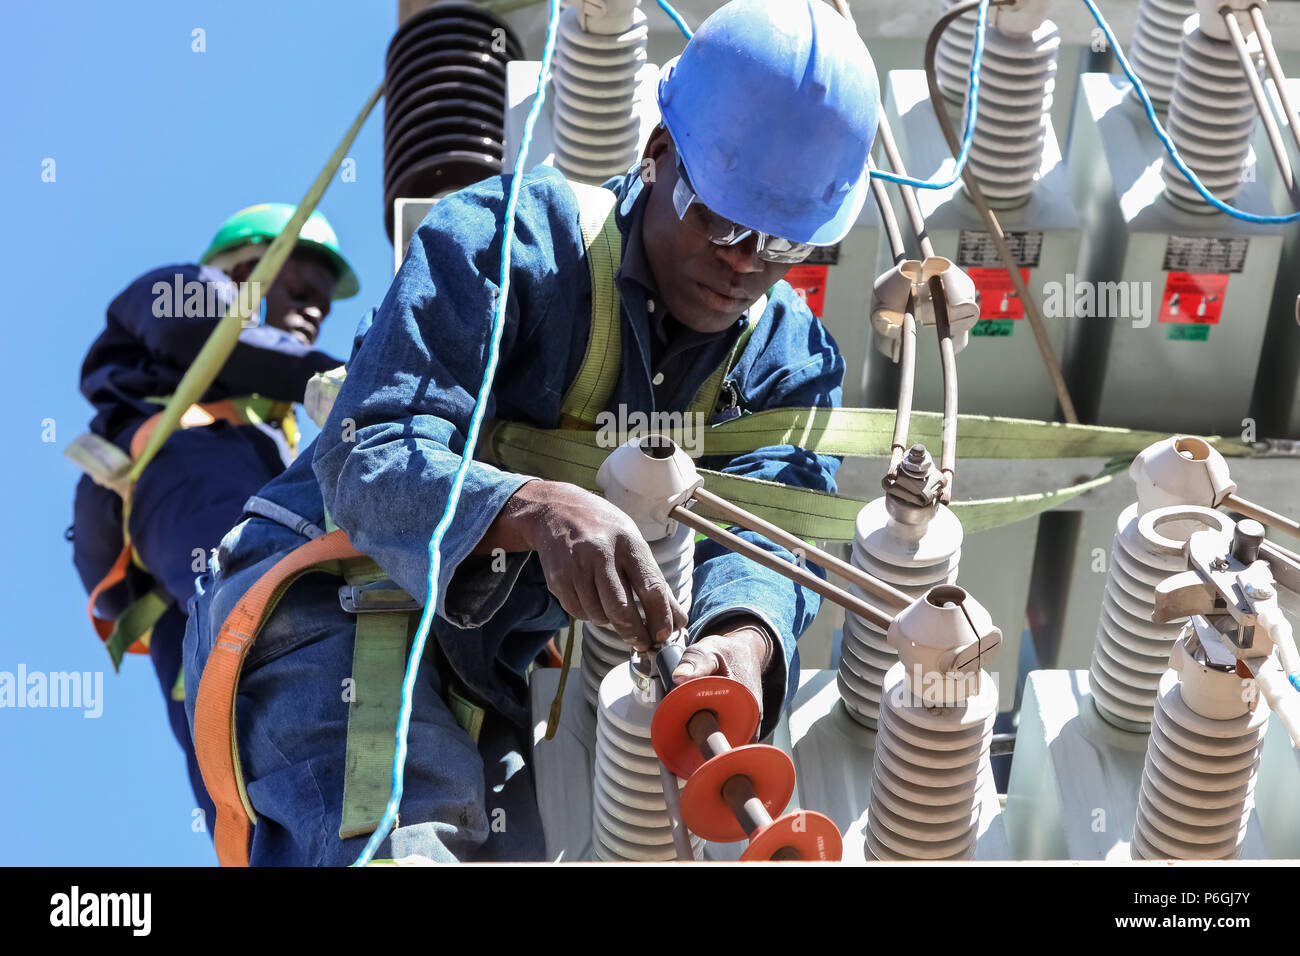 Johannesburg, South Africa, 04/11/2012, Electricians working on high voltage power lines. Highly skilled workmen servicing the electricity grid Stock Photo